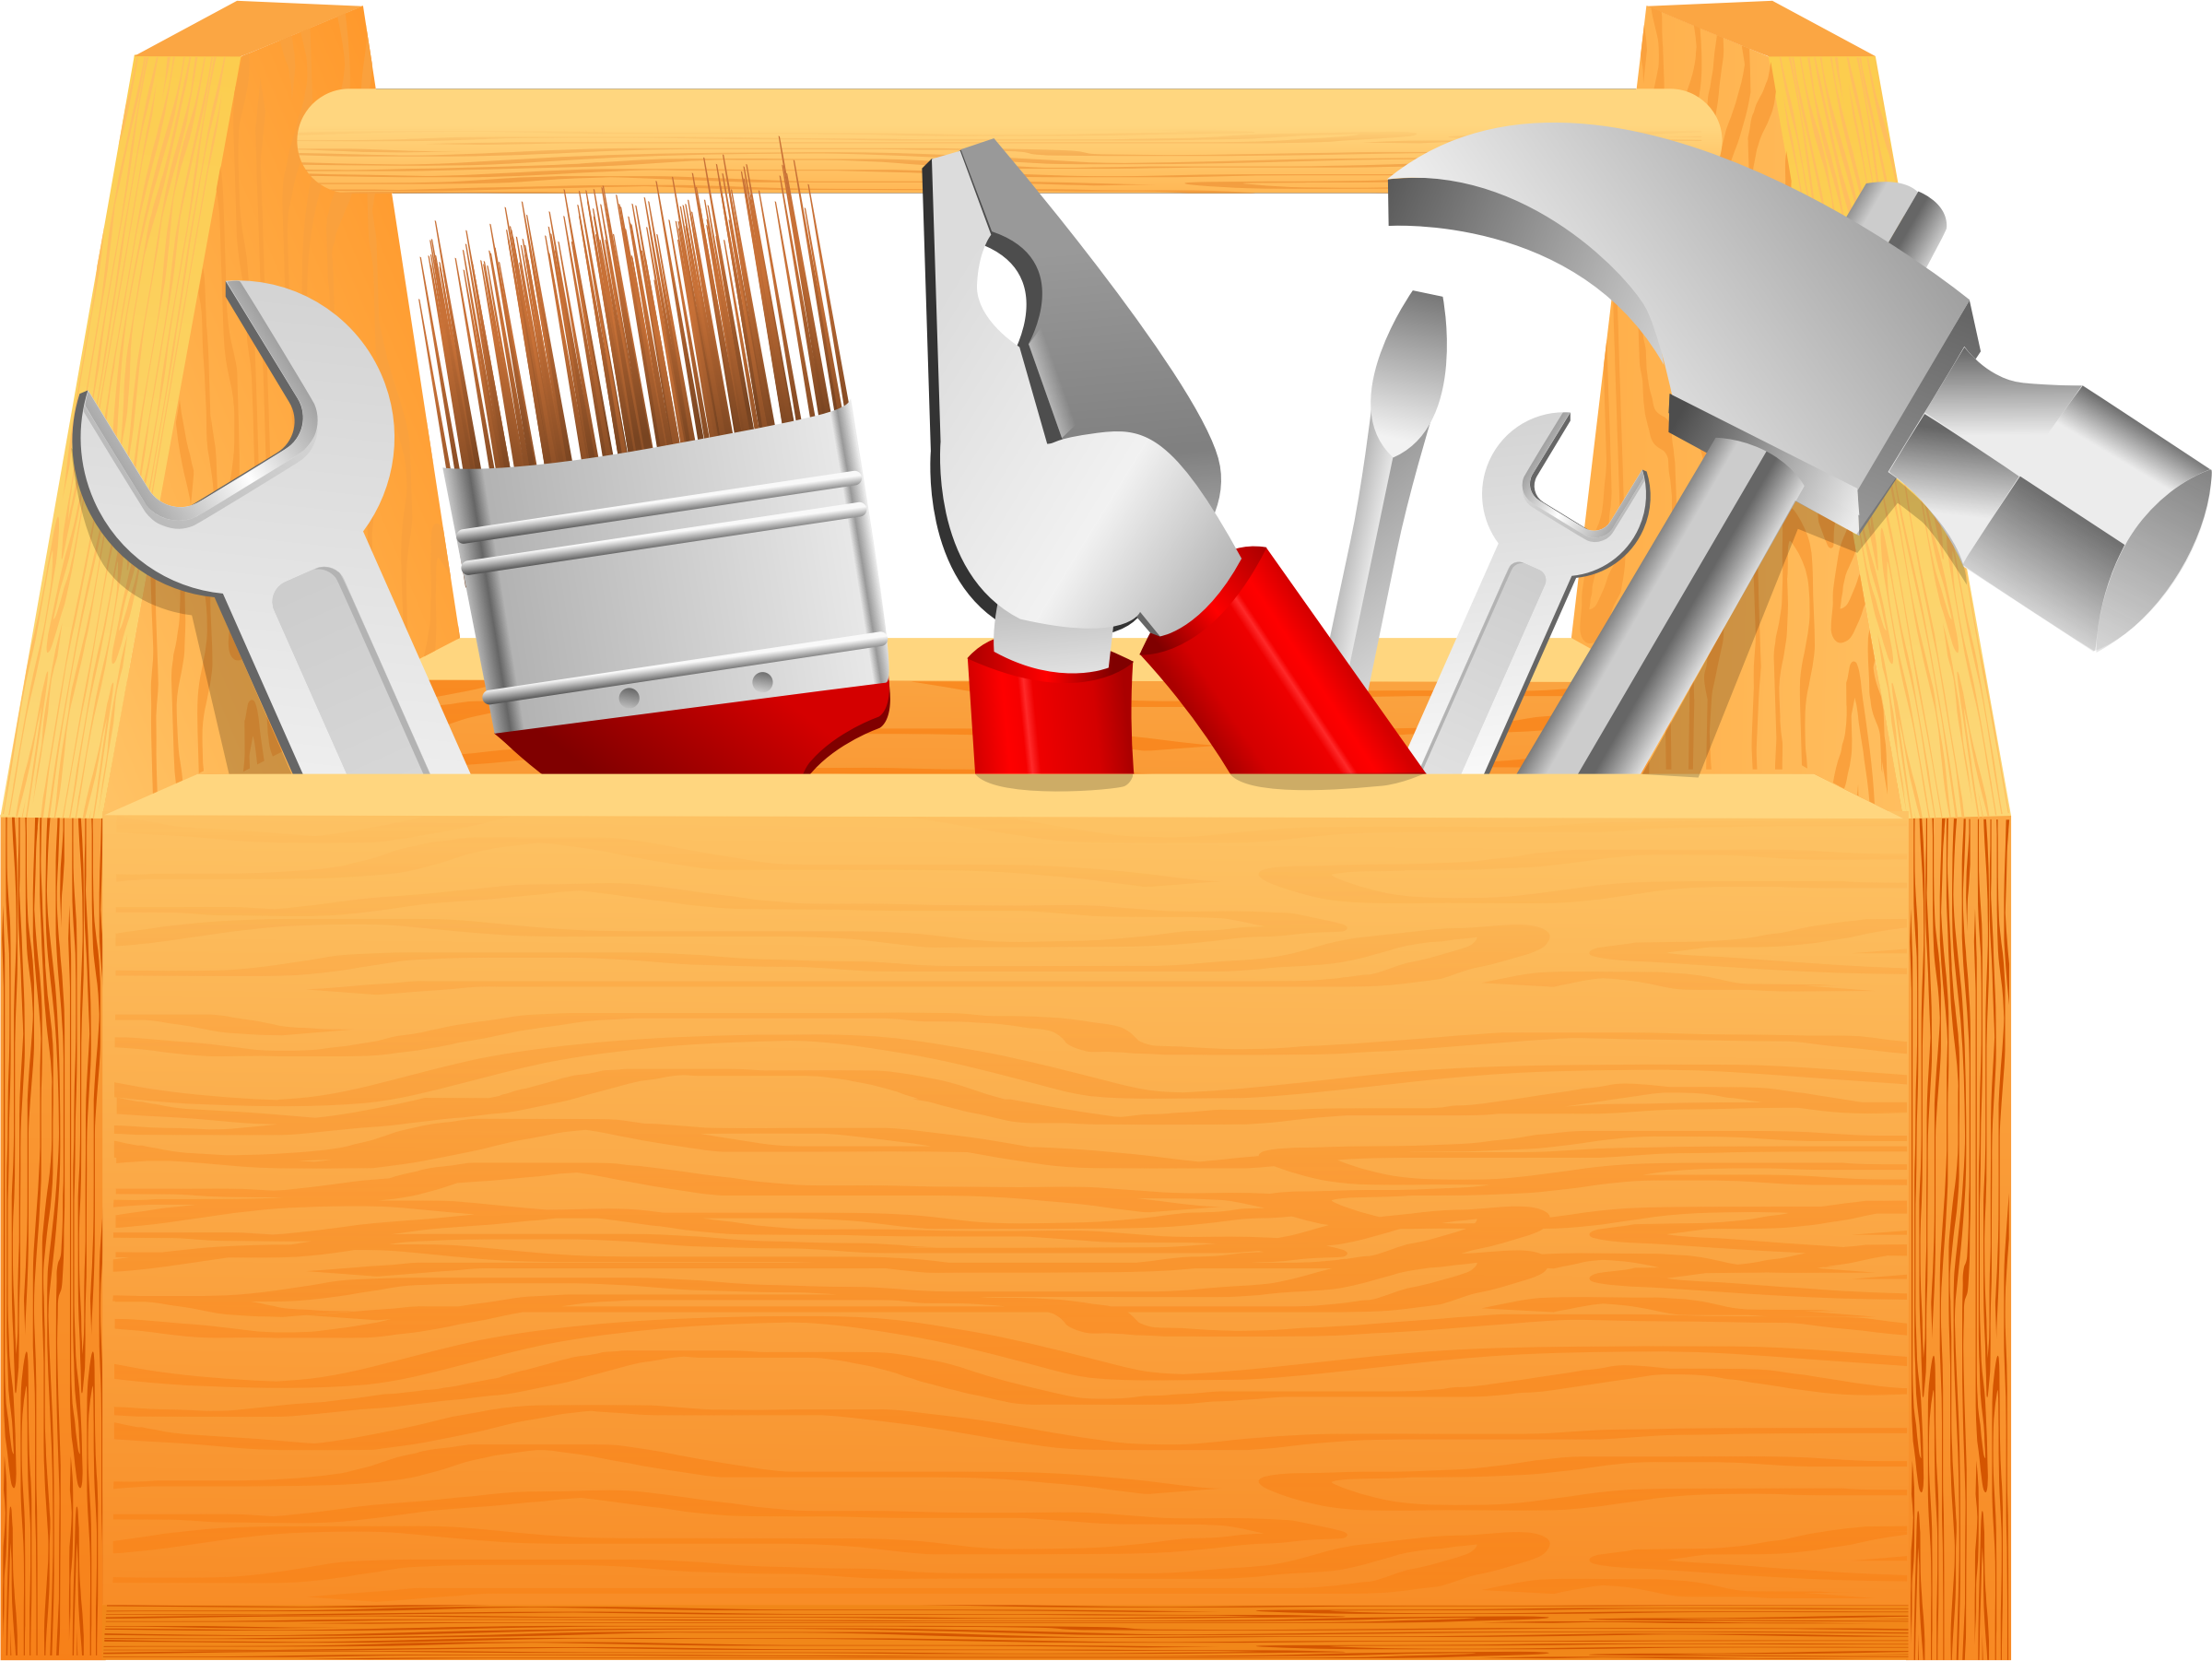 Simple Tool Box by j4p4n